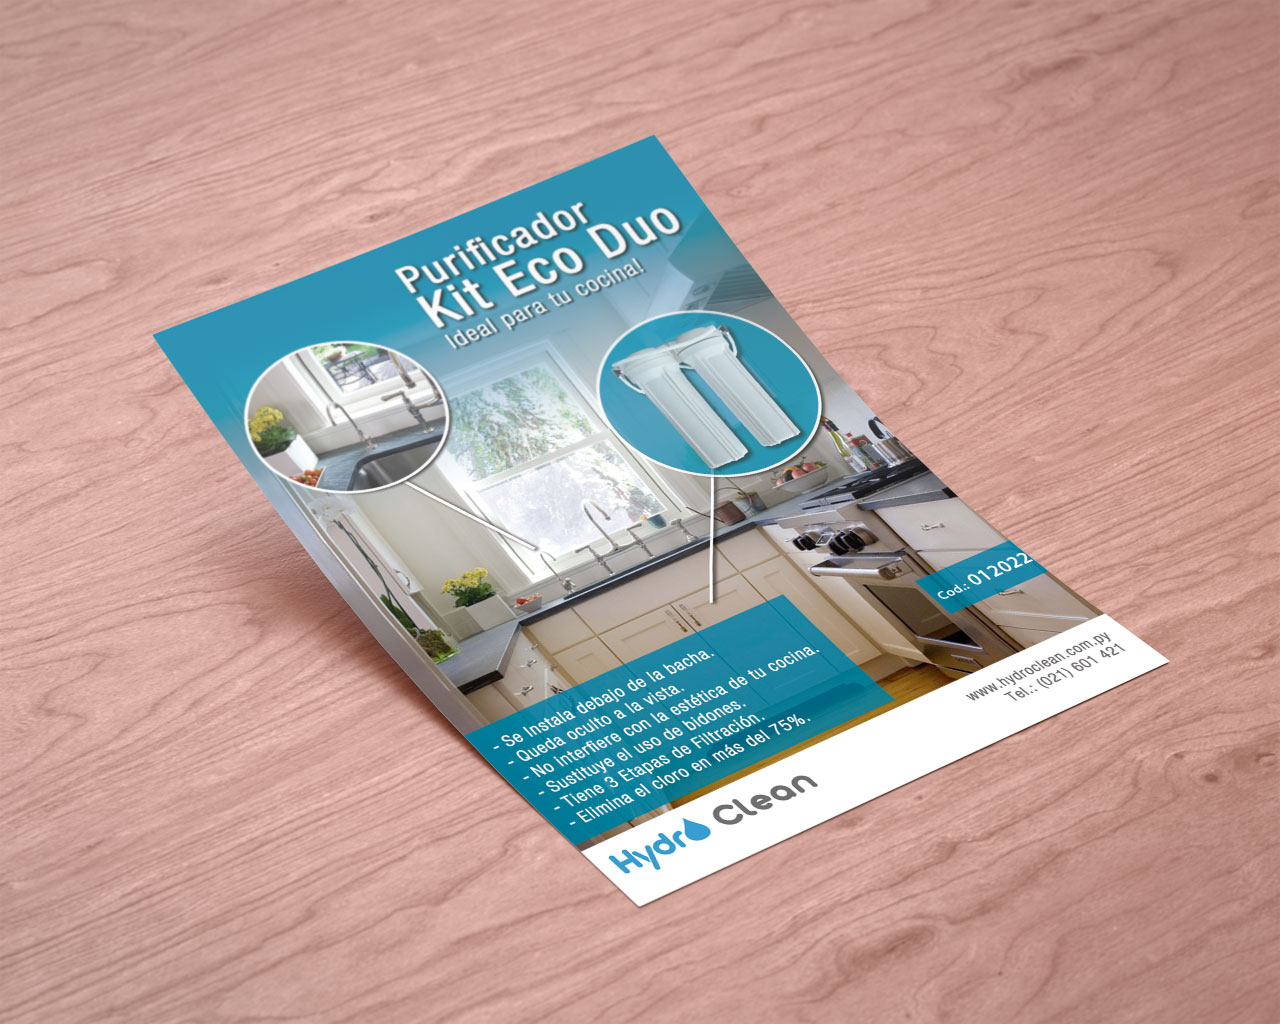 diseño-grafico-flyer-hydro-clean-kit-eco-duo